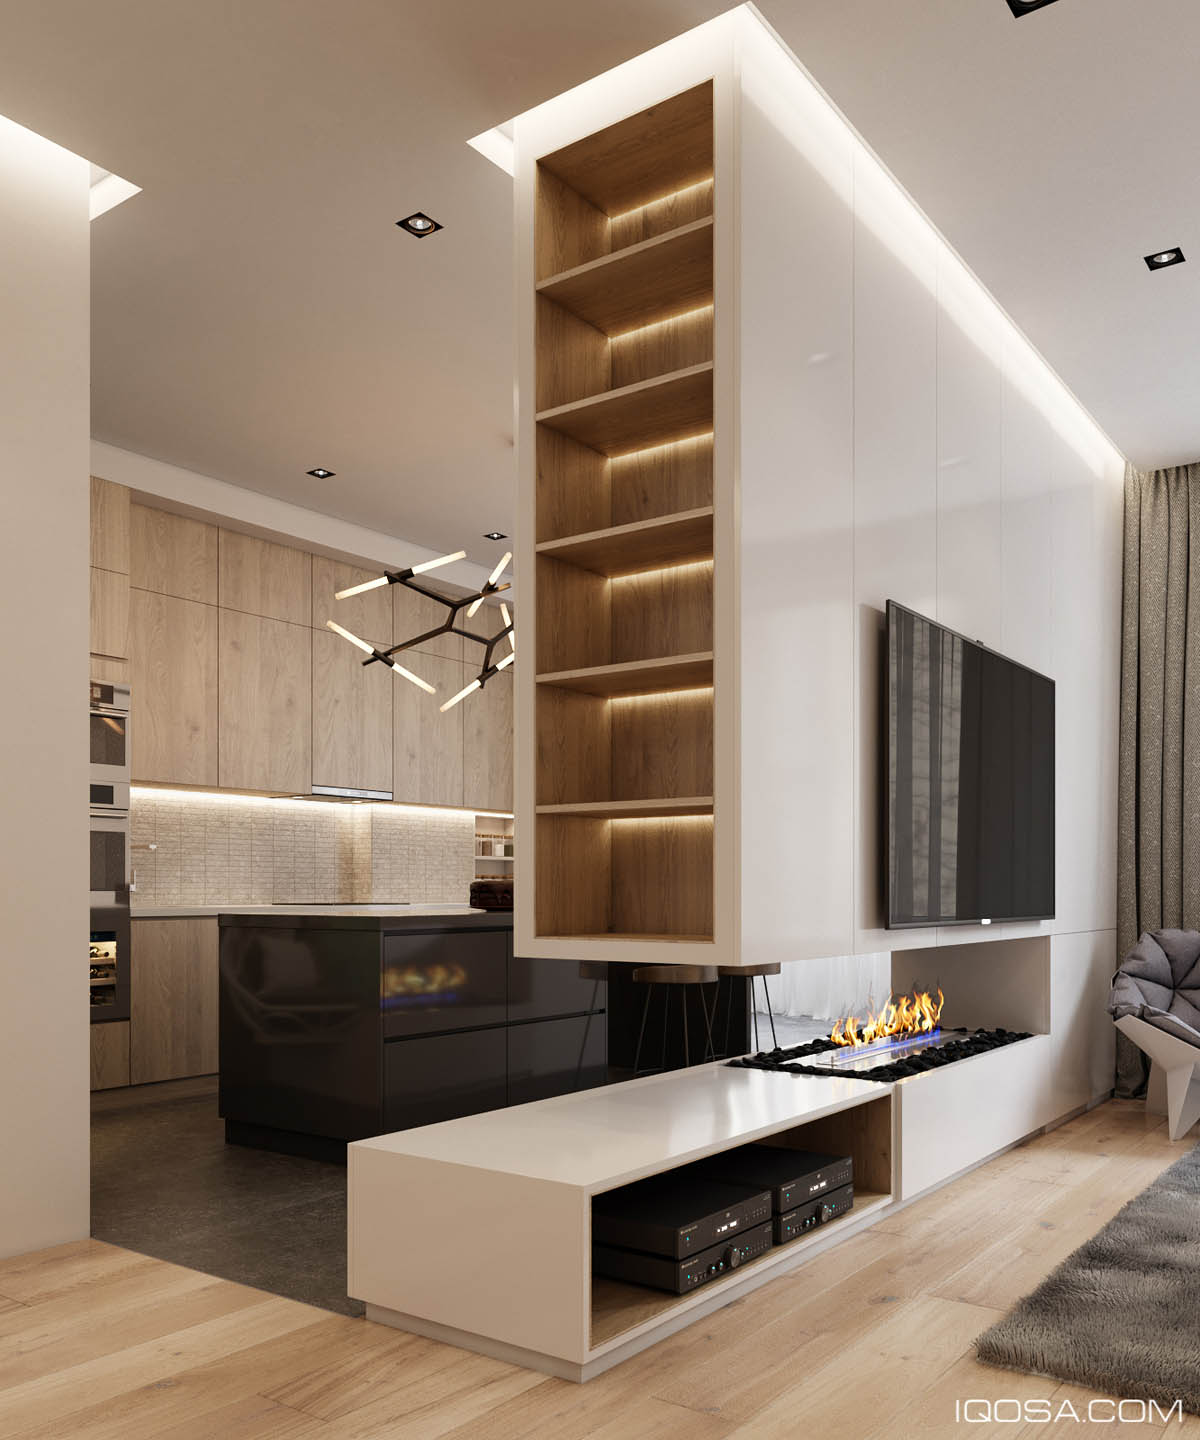 Luxury Apartment: Home Design Under 60 Square Meters: 3 Examples That